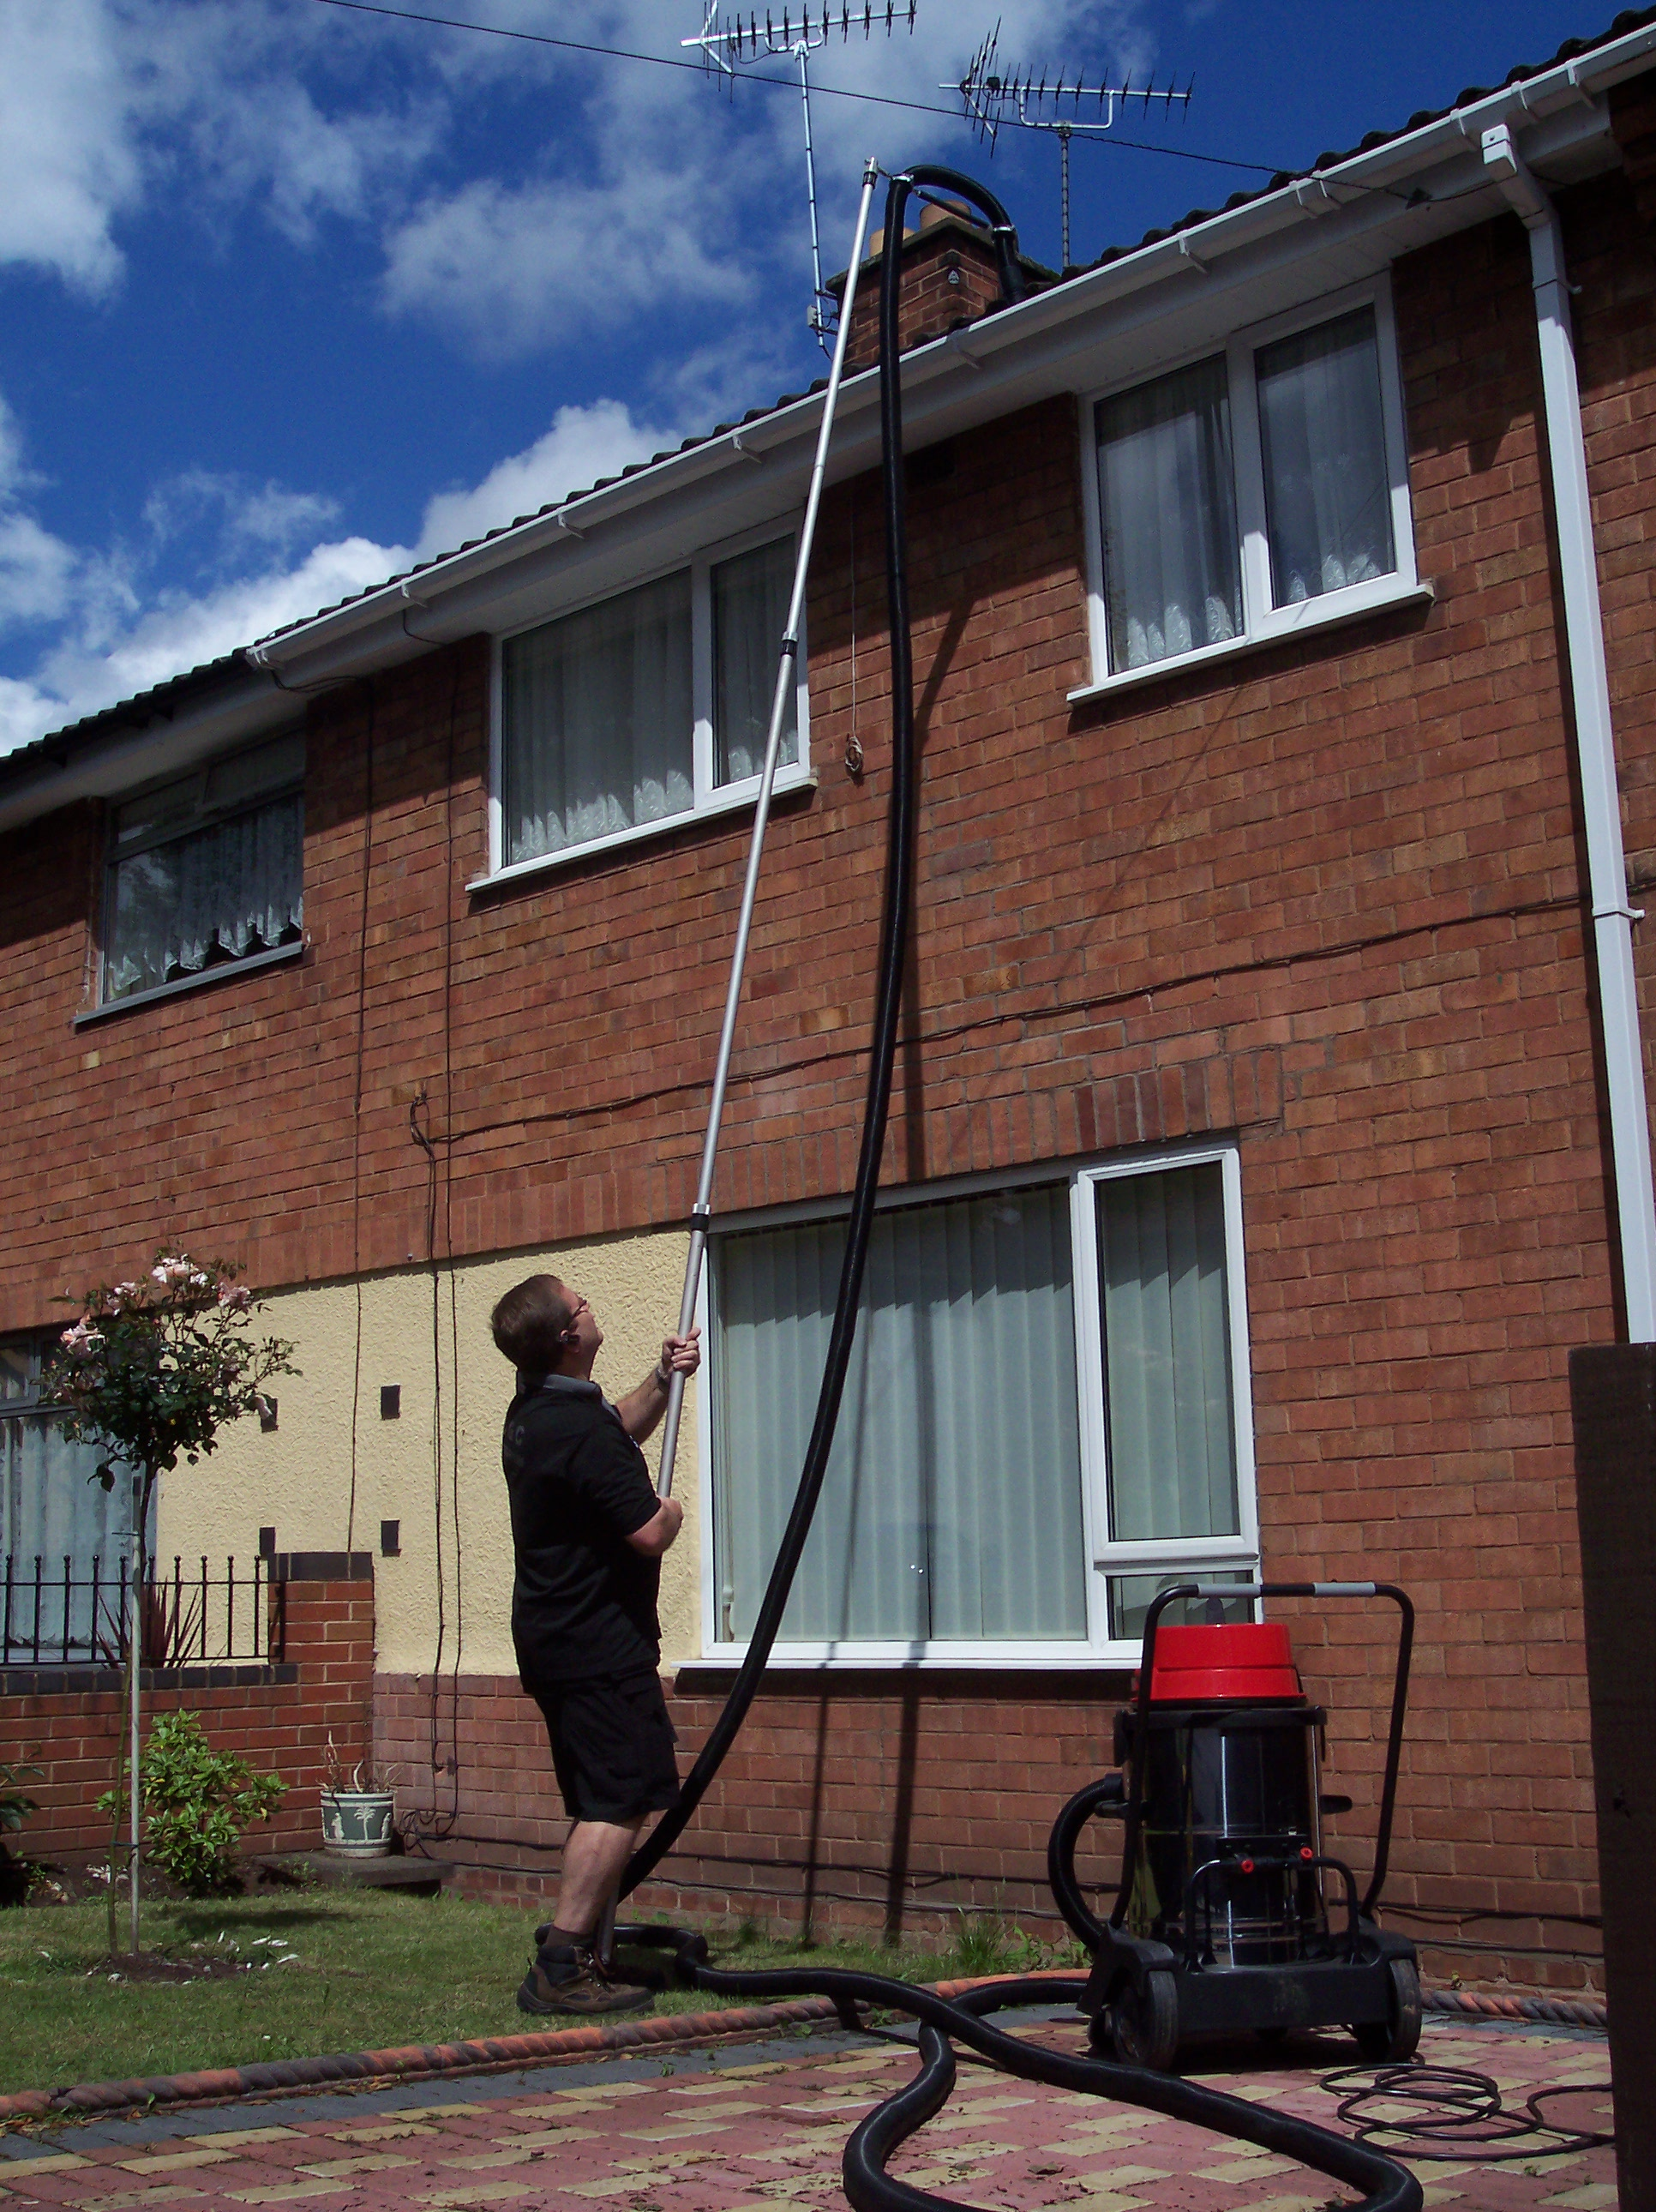 Gutter Cleaning - Upper Glass Cleaning-Extraordinary Cleaners